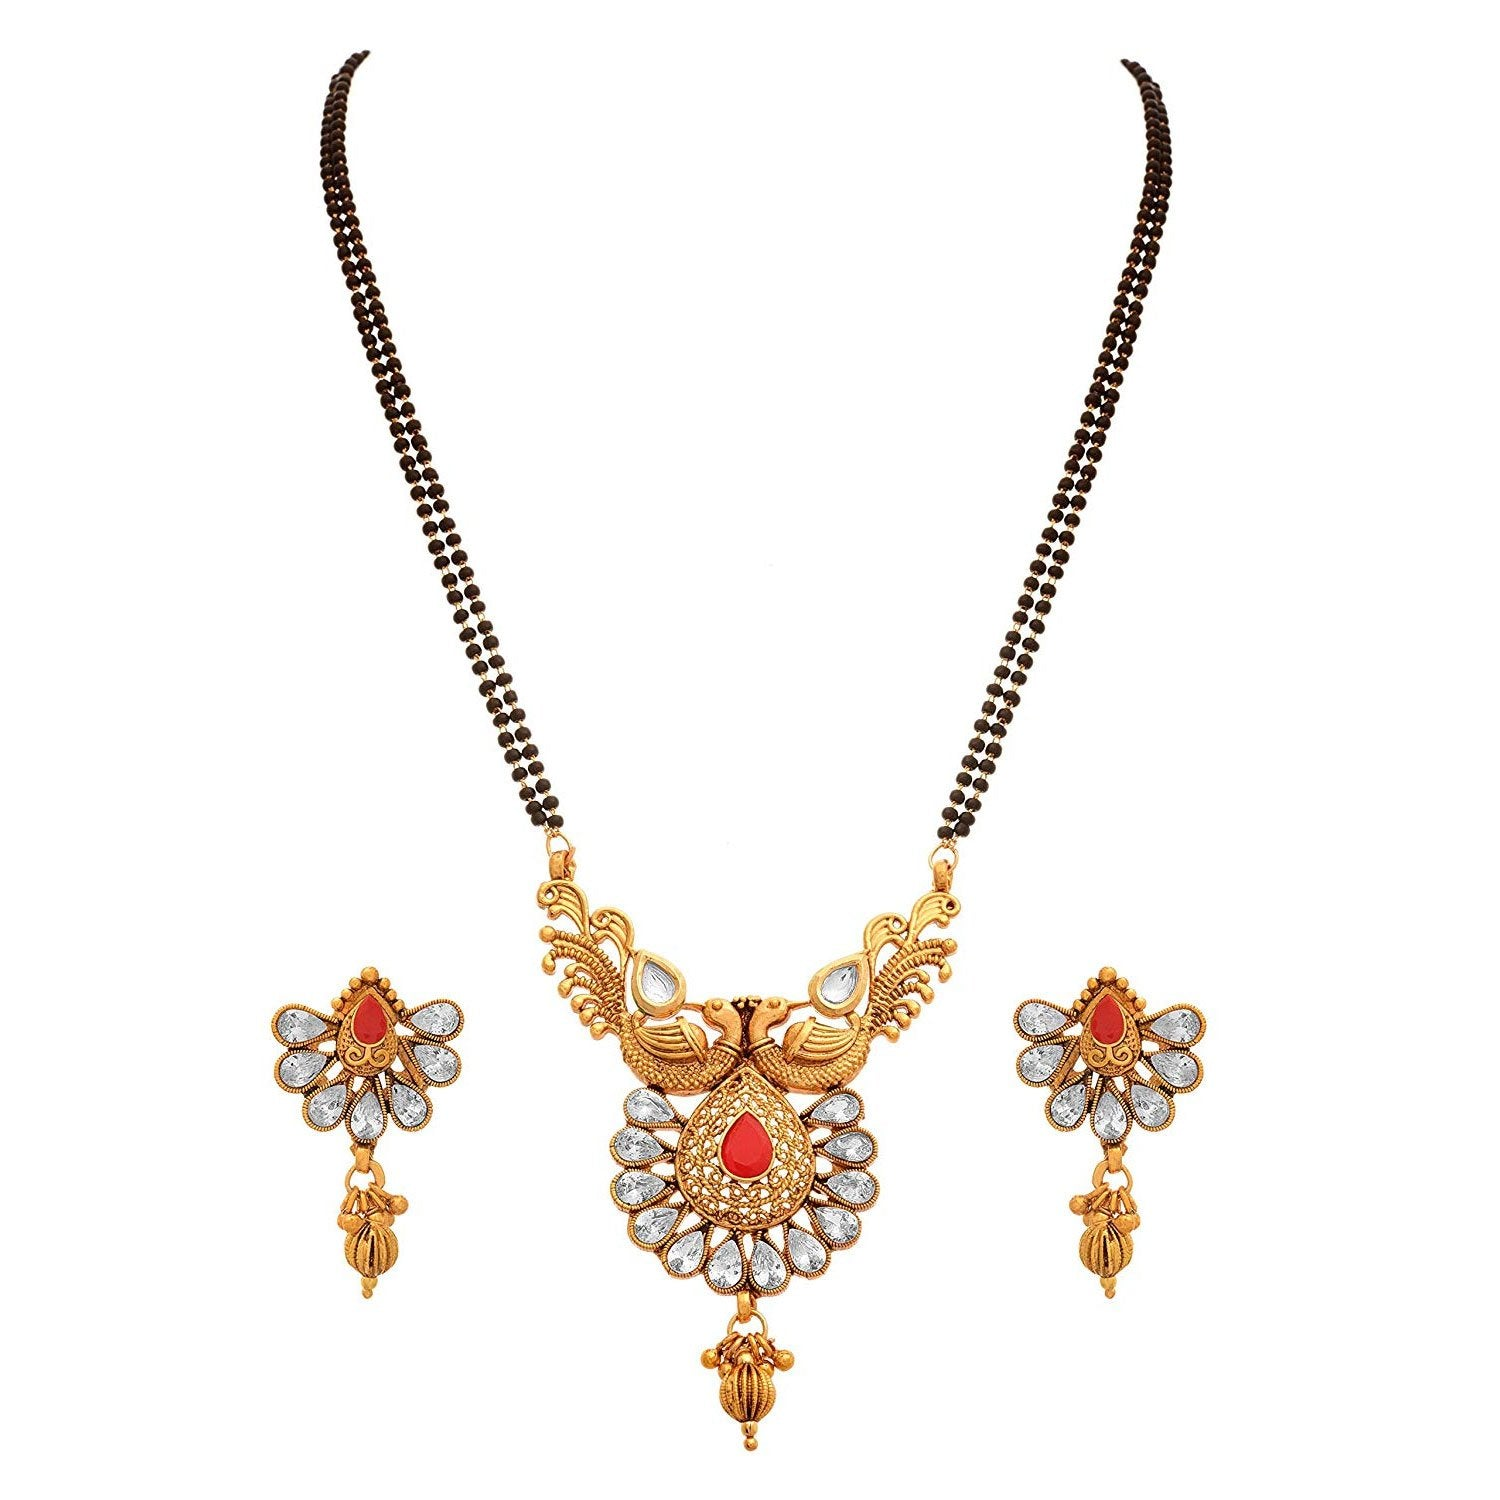 JFL - Jewellery for Less One Gram Gold Plated Diamond & Kundan With Peacock Designer Mangalsutra Mangalsutra Set for Women